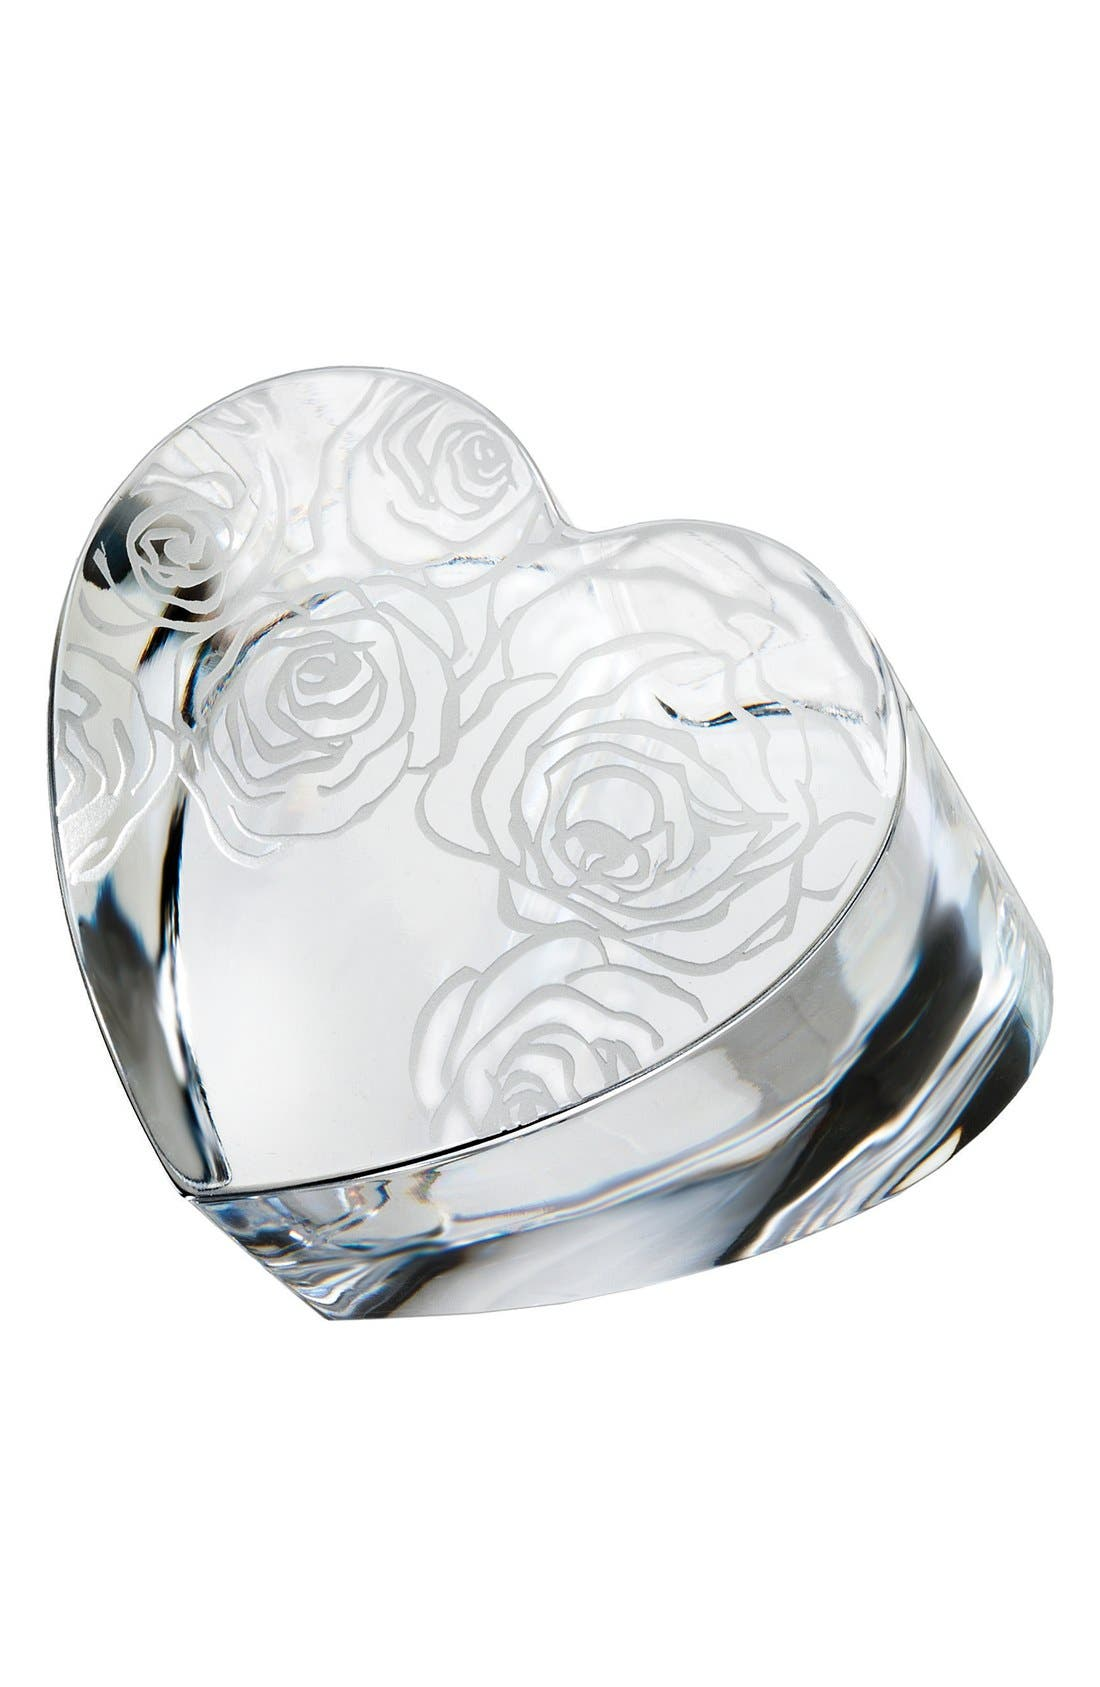 MONIQUE LHUILLIER WATERFORD 'Sunday Rose' Lead Crystal Paperweight